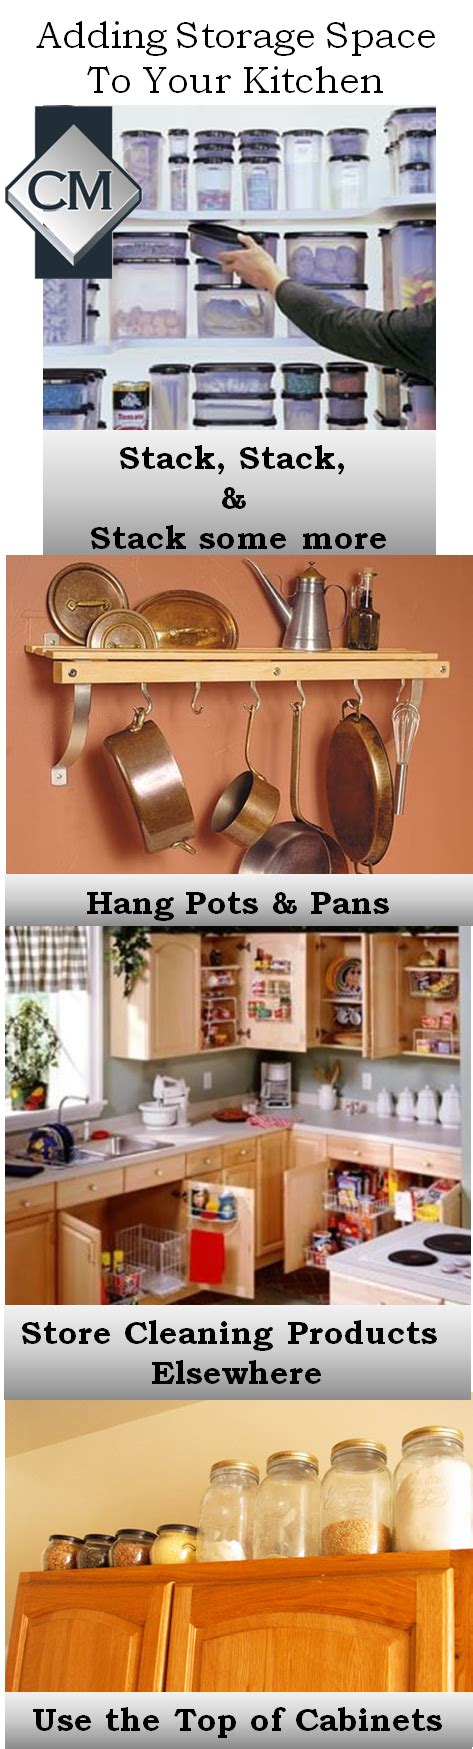 kitchen cabinet trends 2014 open shelving big kitchen cabinet trends for 2014